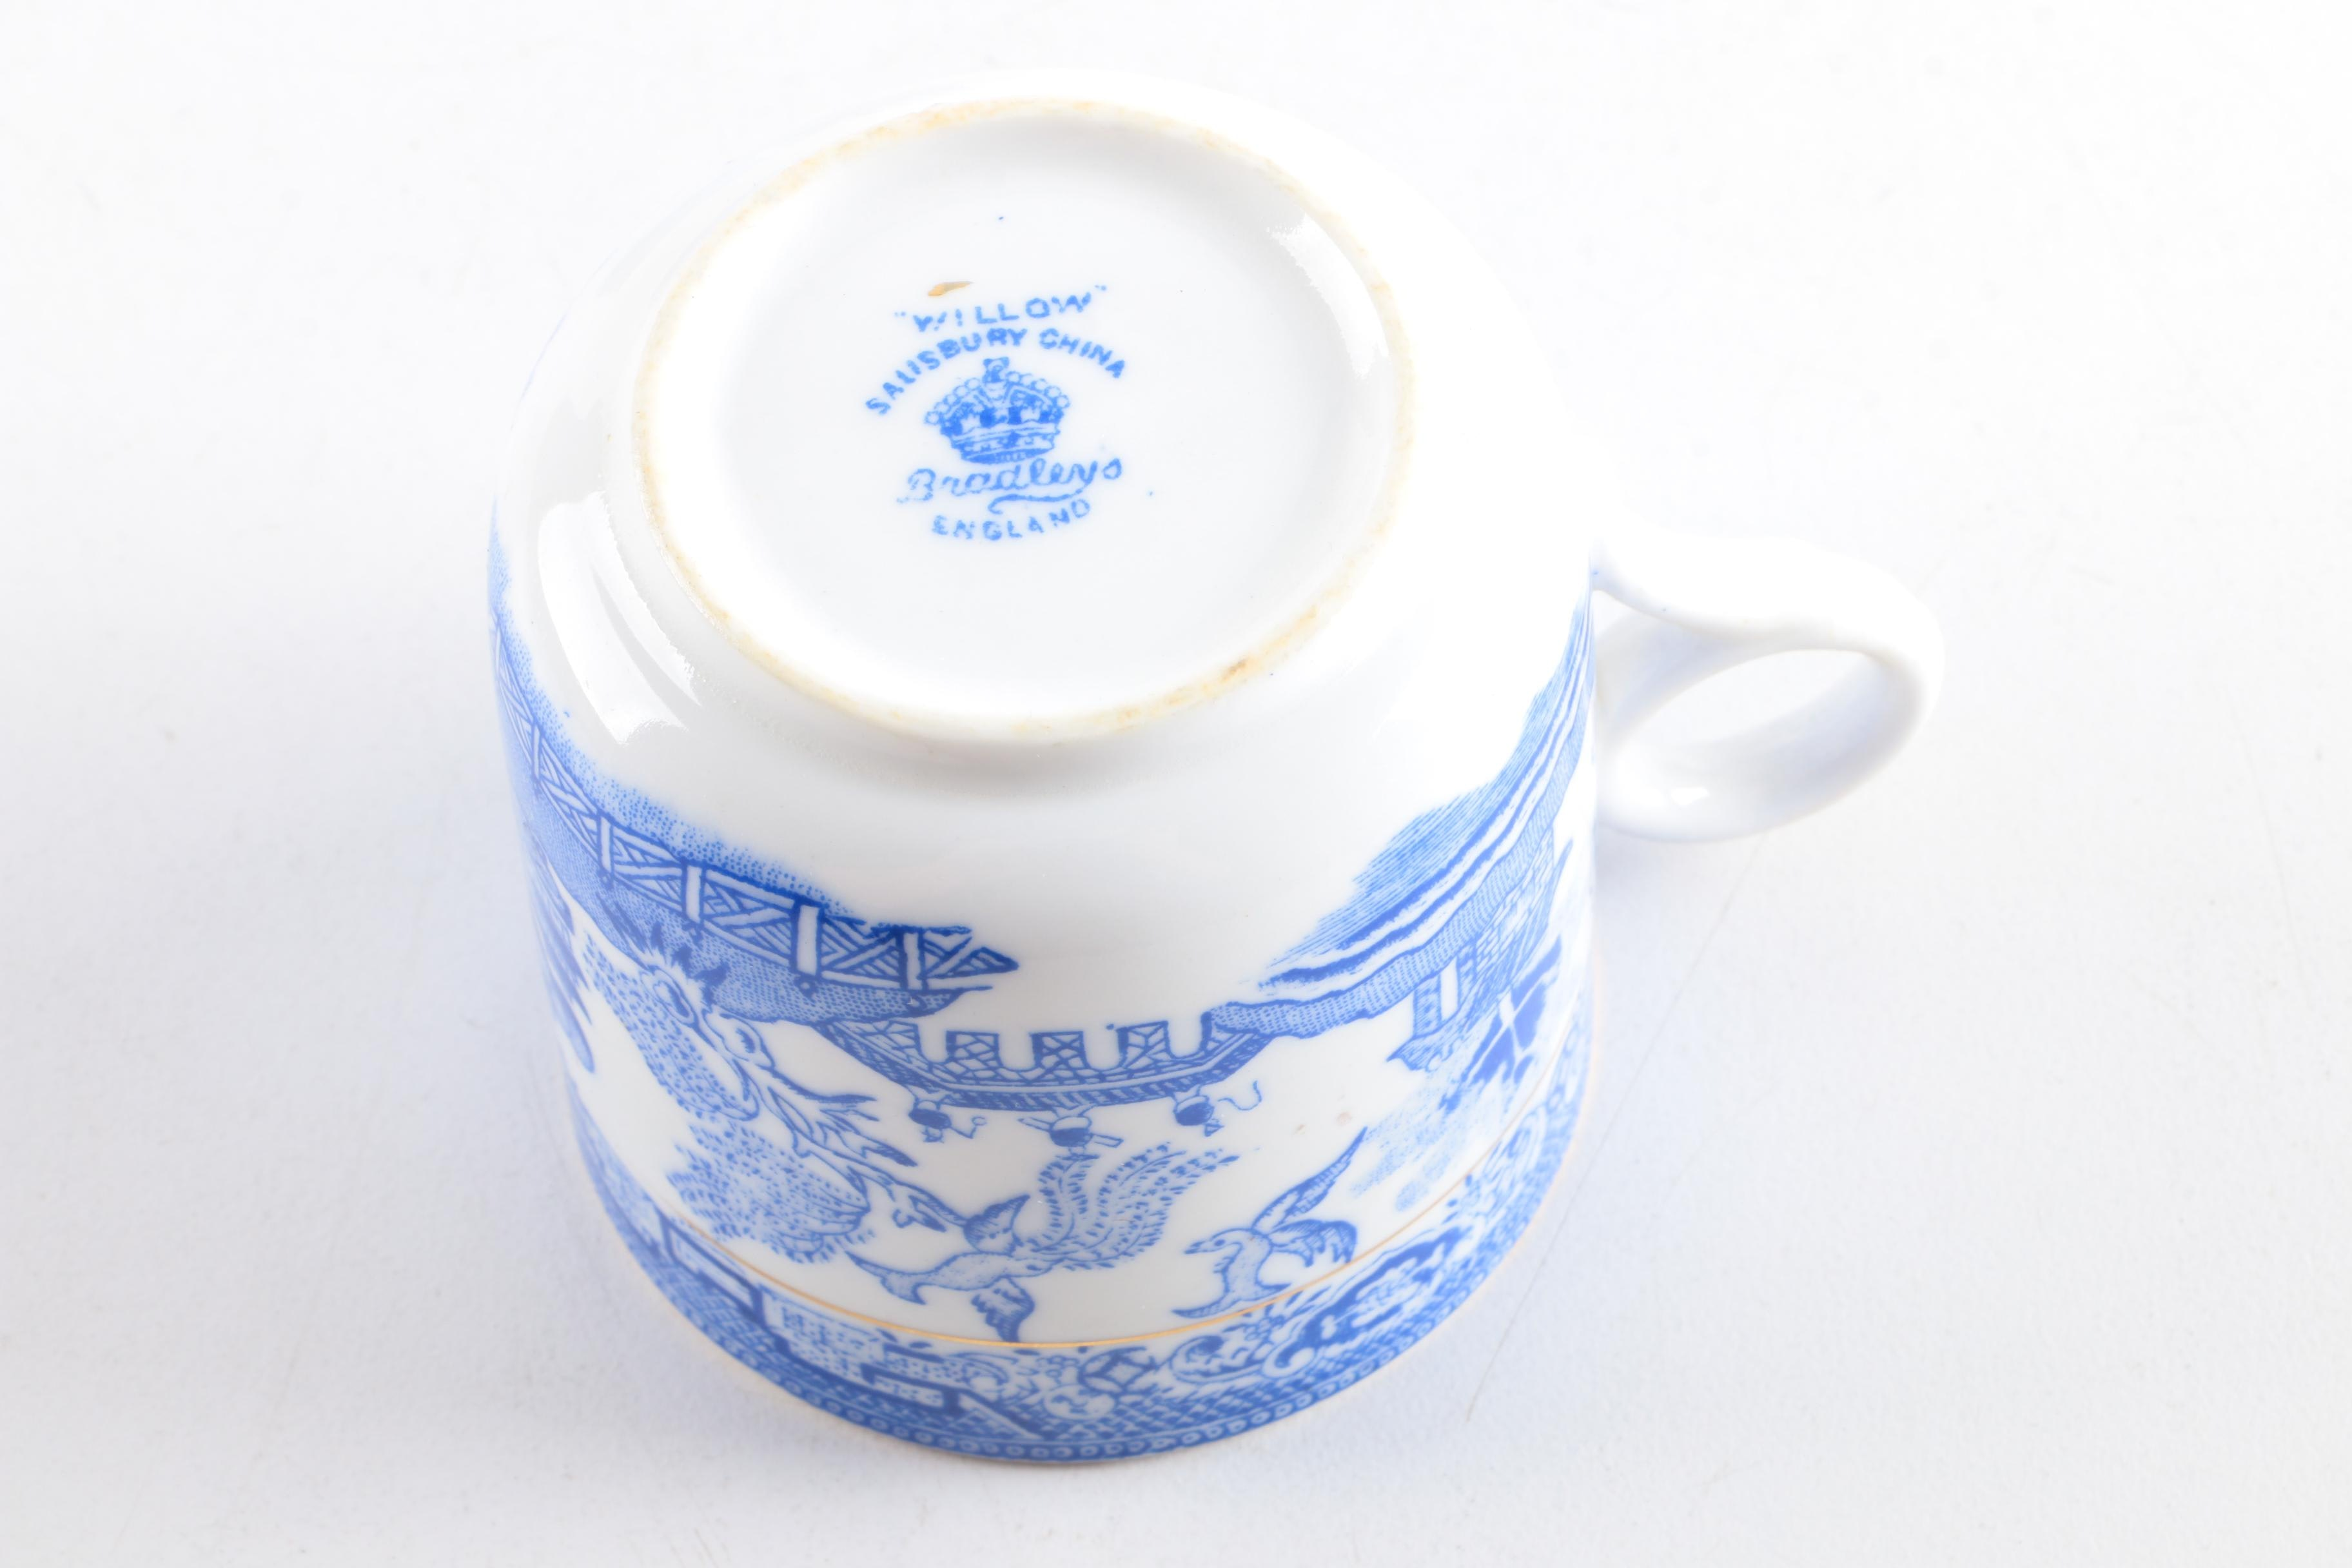 Circa 1930s Salisbury China Quot Willow Quot Transfer Printed